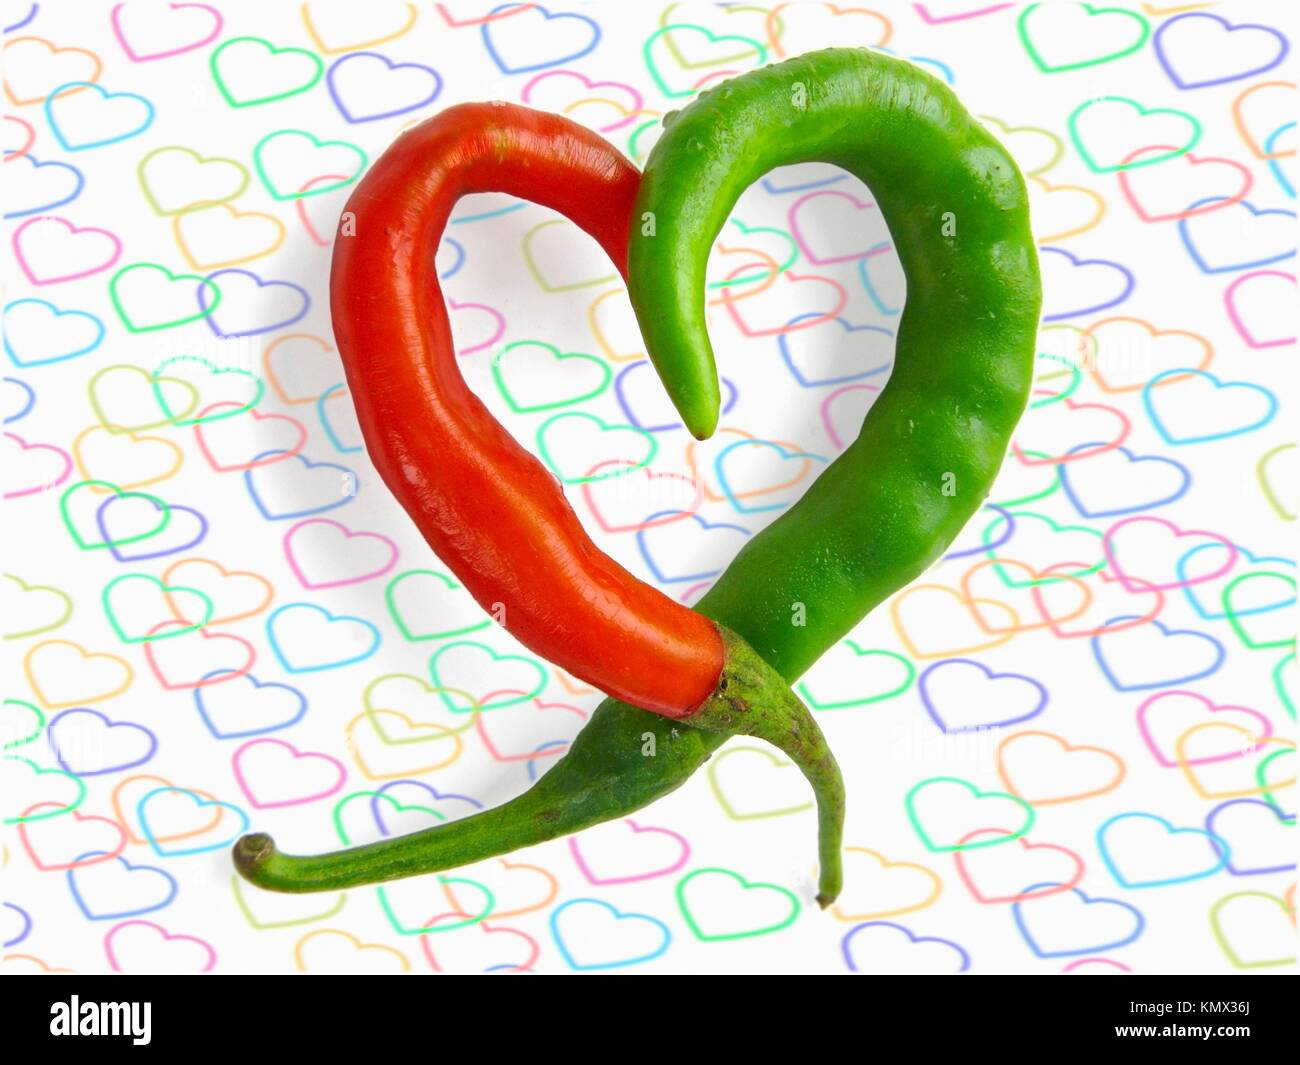 Common Chili, Capsicum annuum, Red and green chilies are kept in heart shape - Stock Image